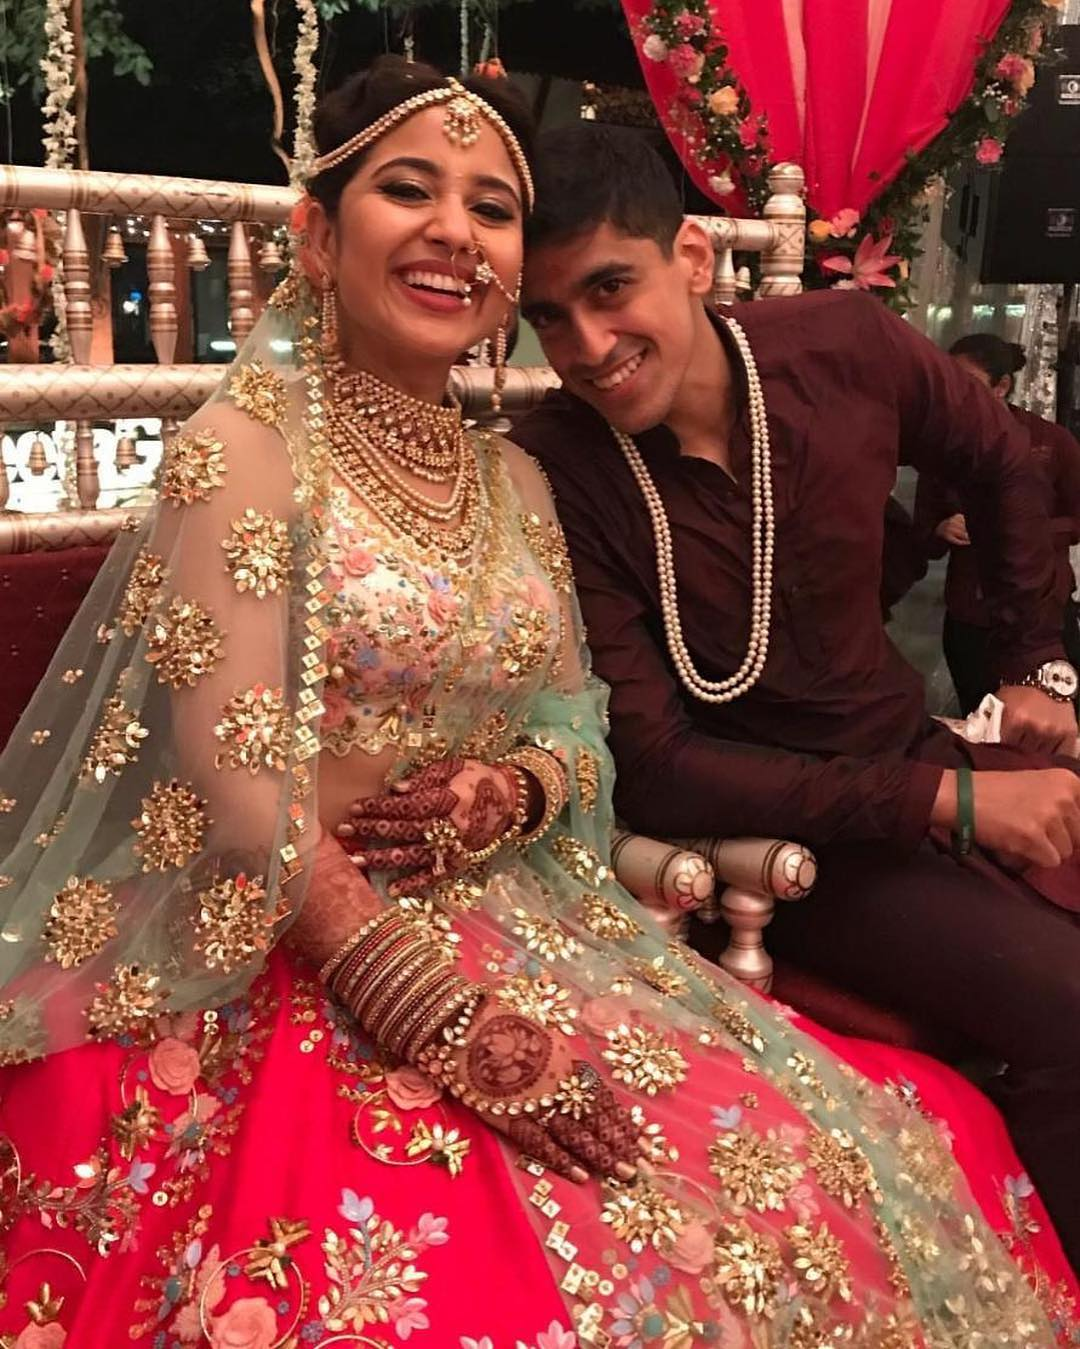 3 shweta tripathi wedding - close up of the bride and groom